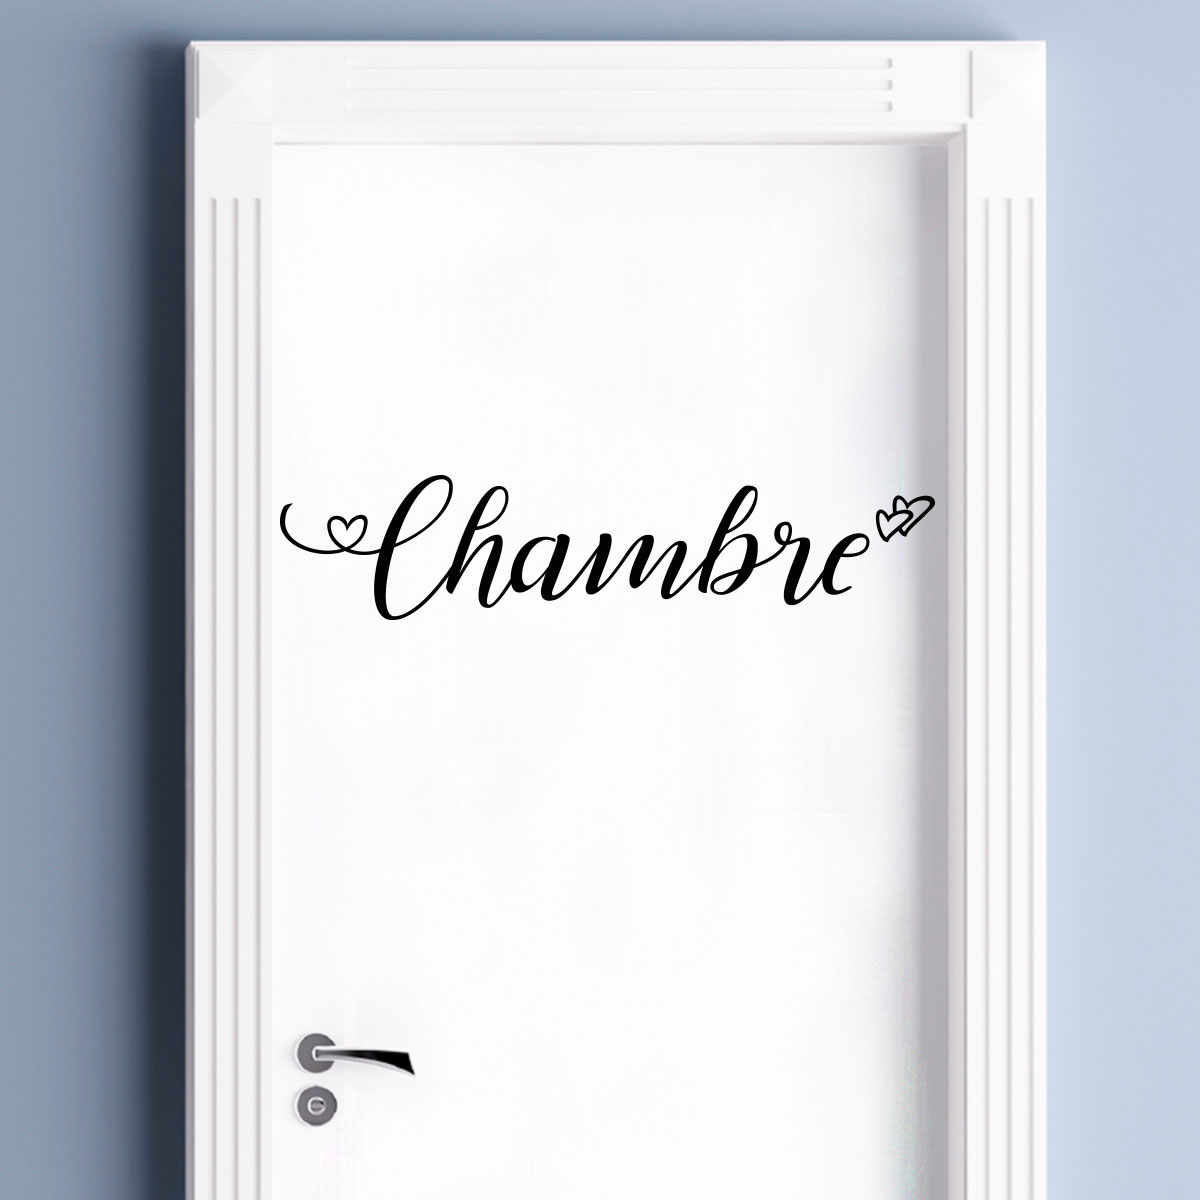 Sticker porte chambre amoureuse stickers f tes stickers for Stickers pour porte de chambre